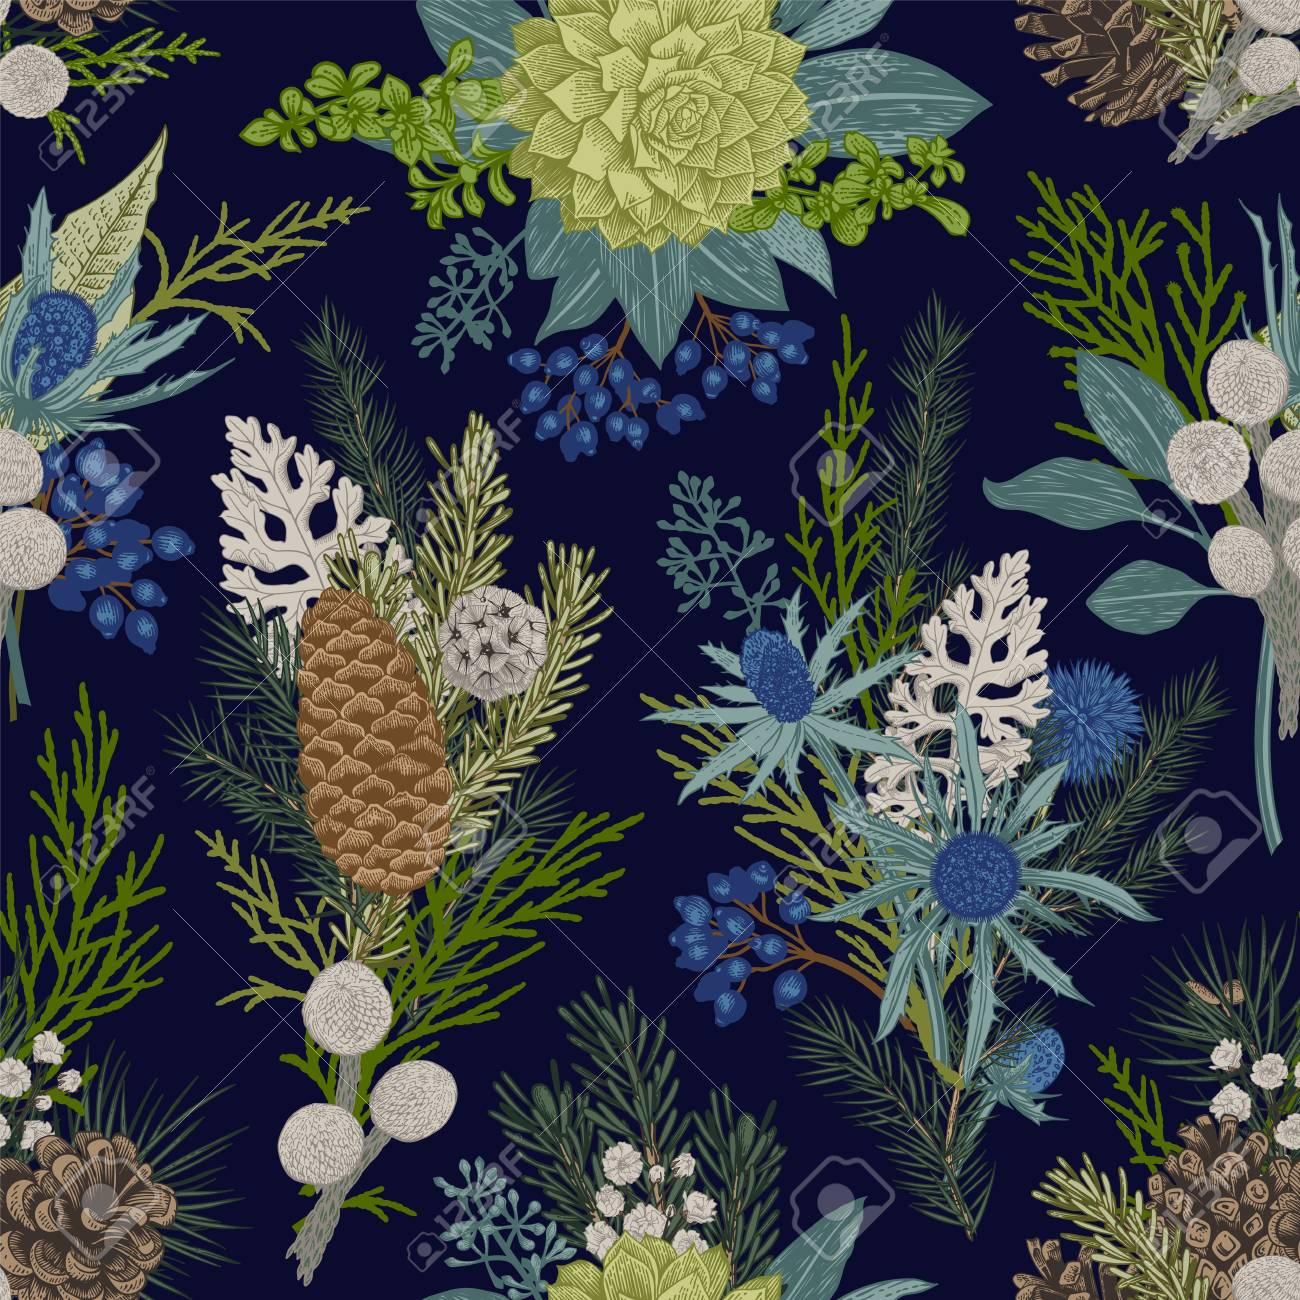 Seamless floral pattern. Winter Christmas decor. Evergreen, cone, succulents, flowers, leaves, berries. Botanical vector vintage illustration. - 89747403